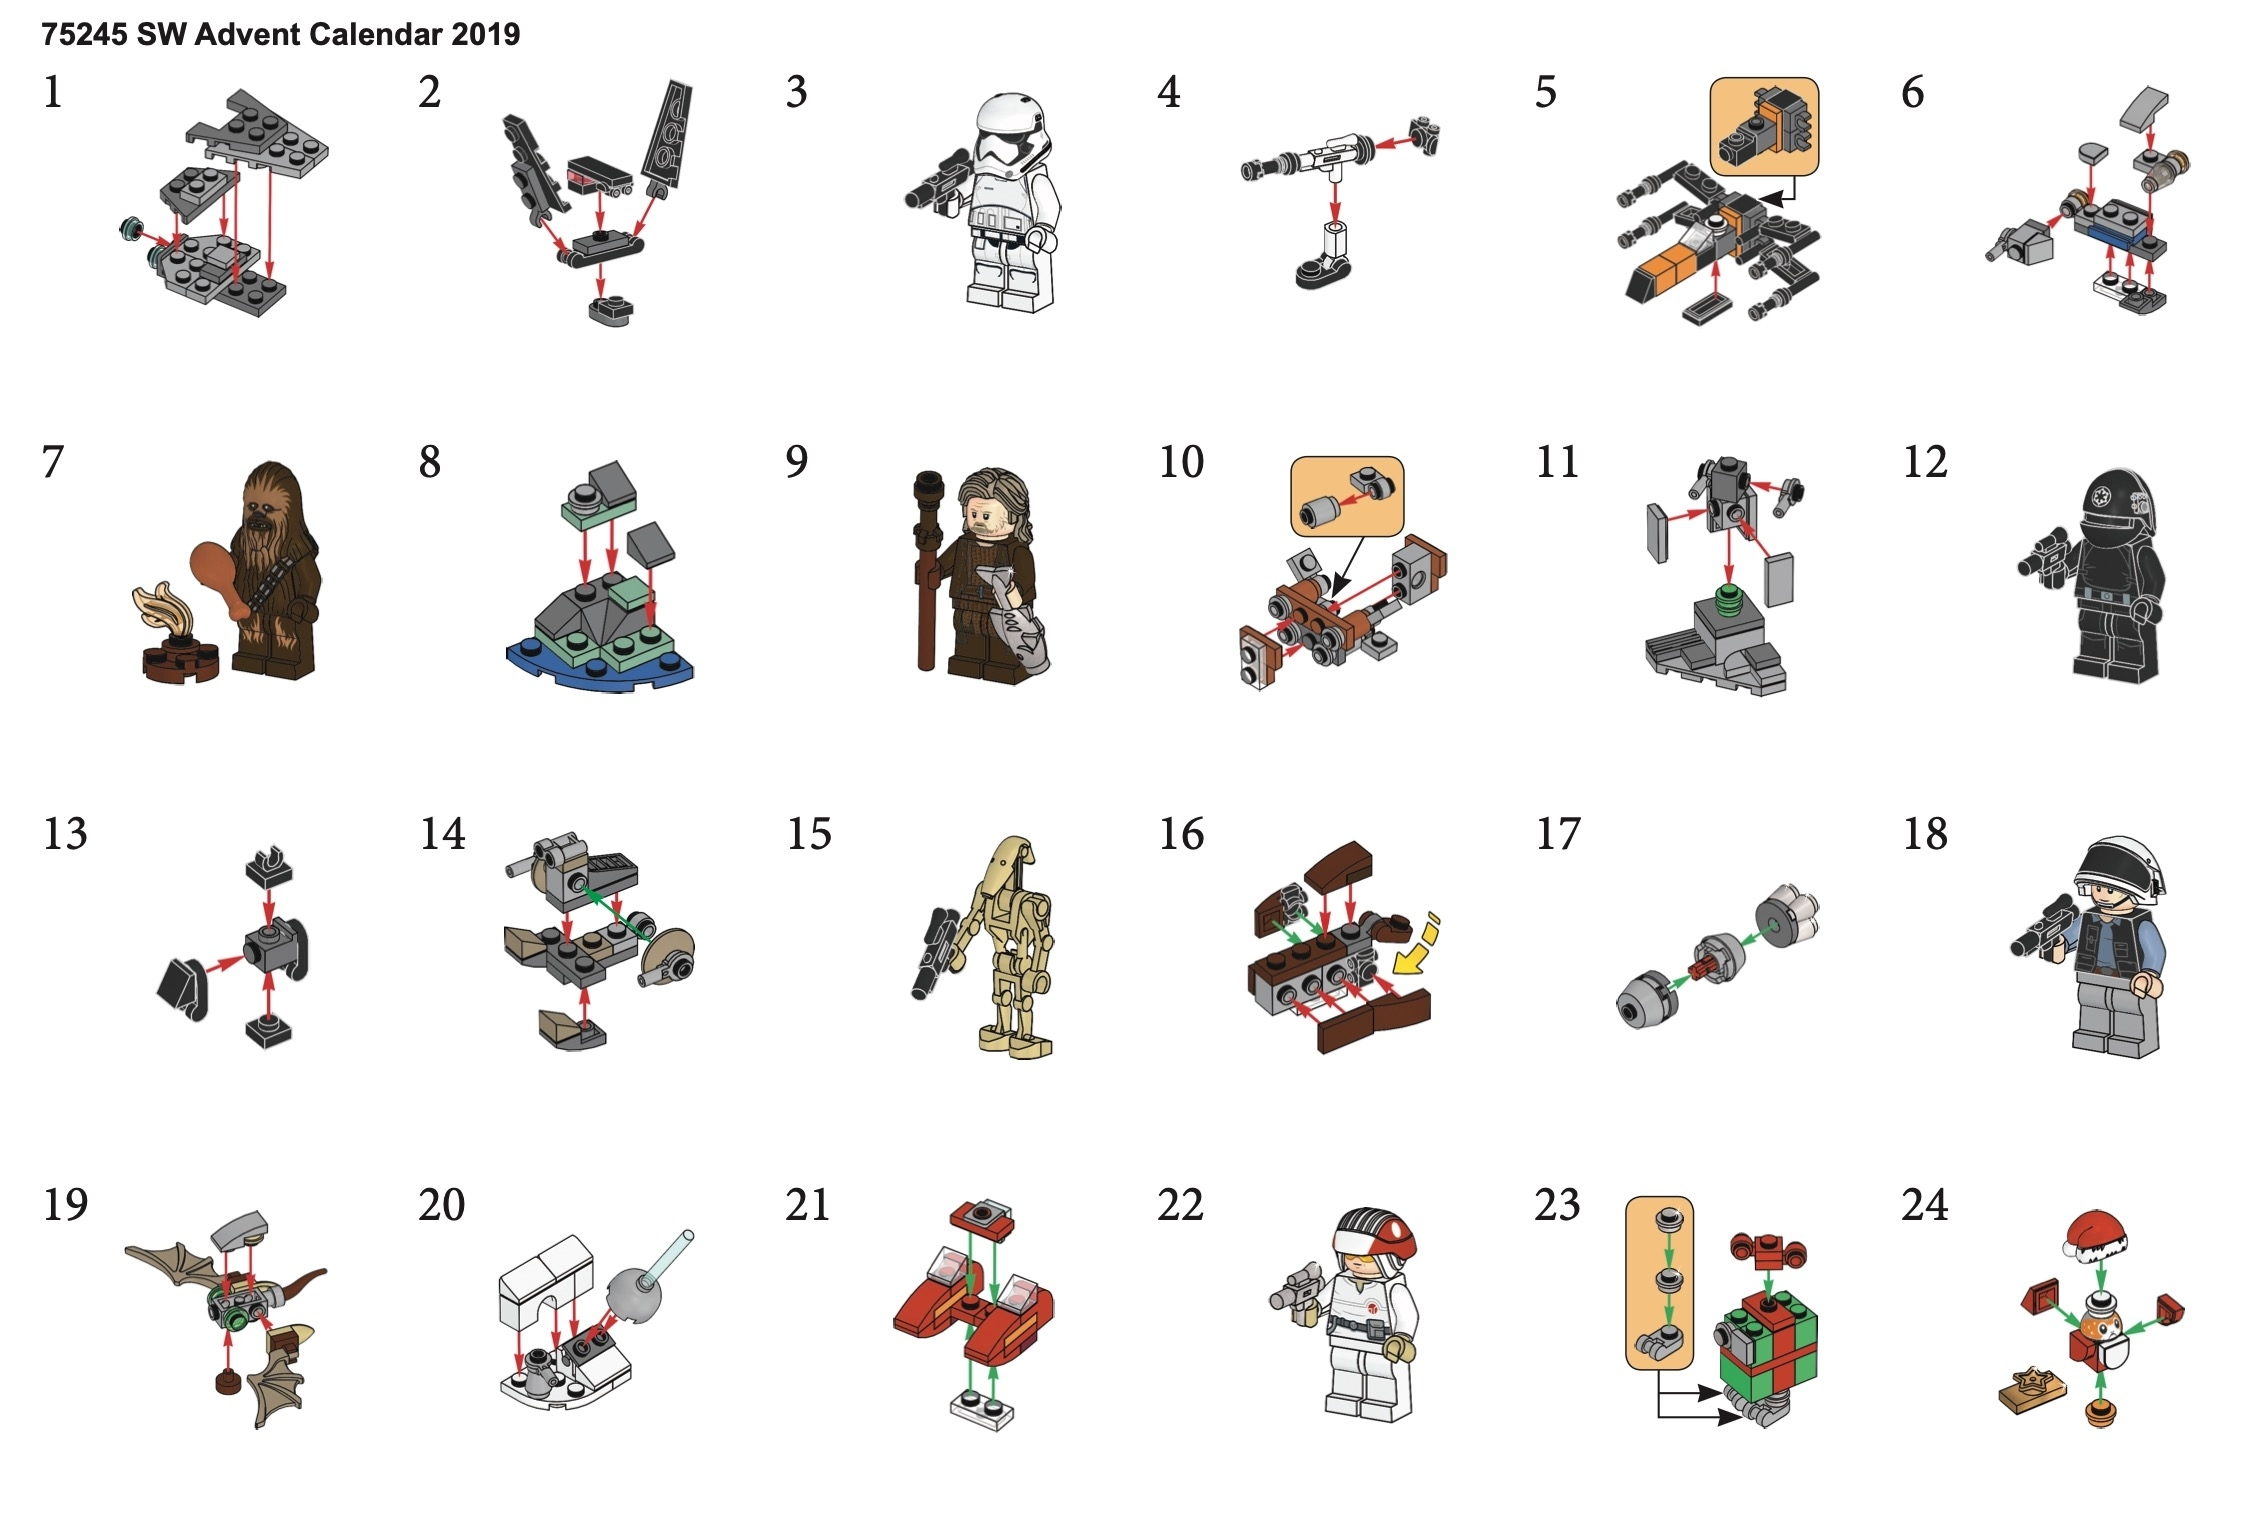 Lego 75245 Star Wars Advent Calendar Instructions, Star Wars regarding Lego Star Wars 2018 Advent Calendar Instructions